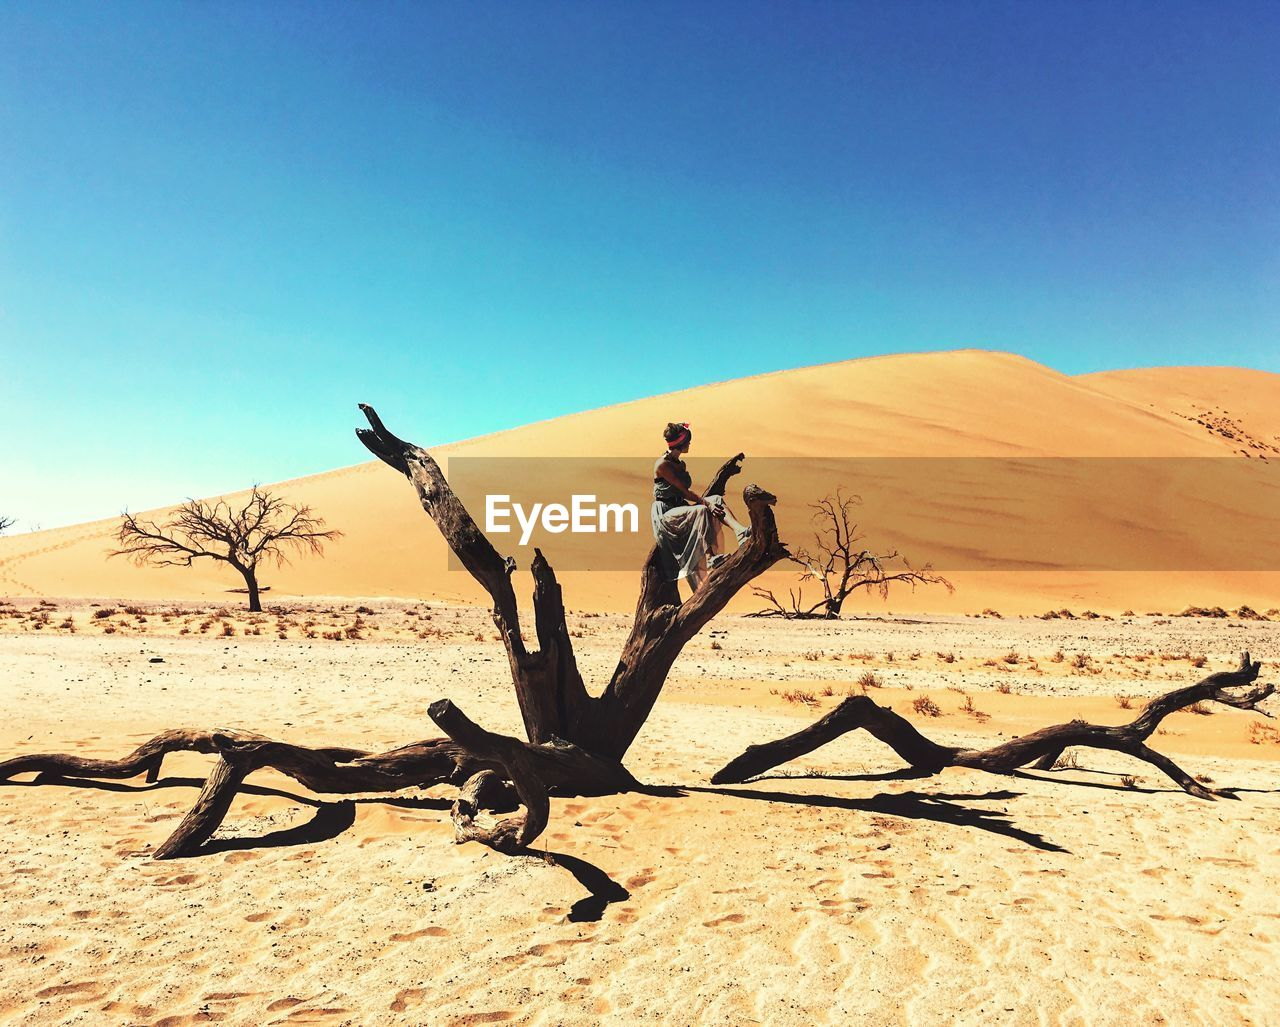 Woman Sitting On Branch Of Bare Tree In Desert